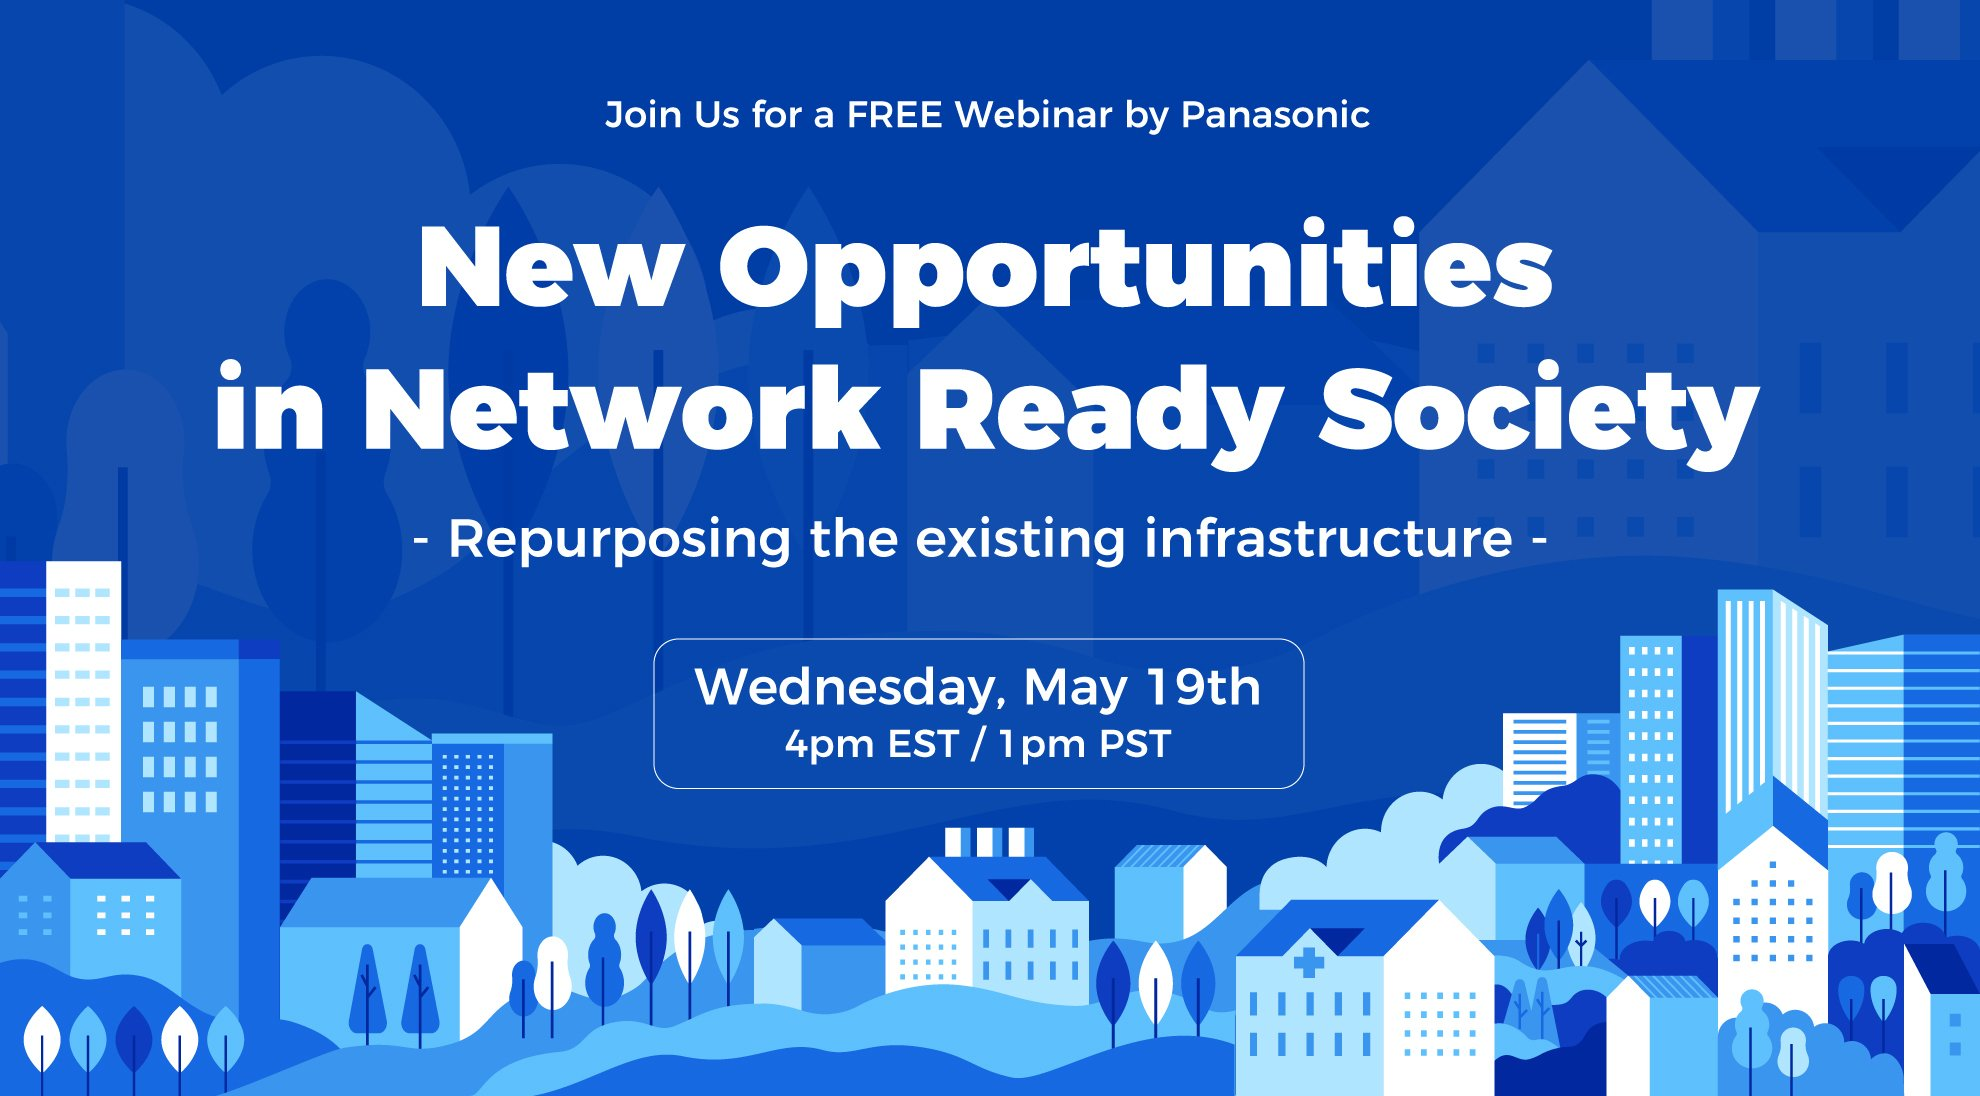 Global Webinar: New Opportunities in Network Ready Society -Repurposing the existing infrastructure-